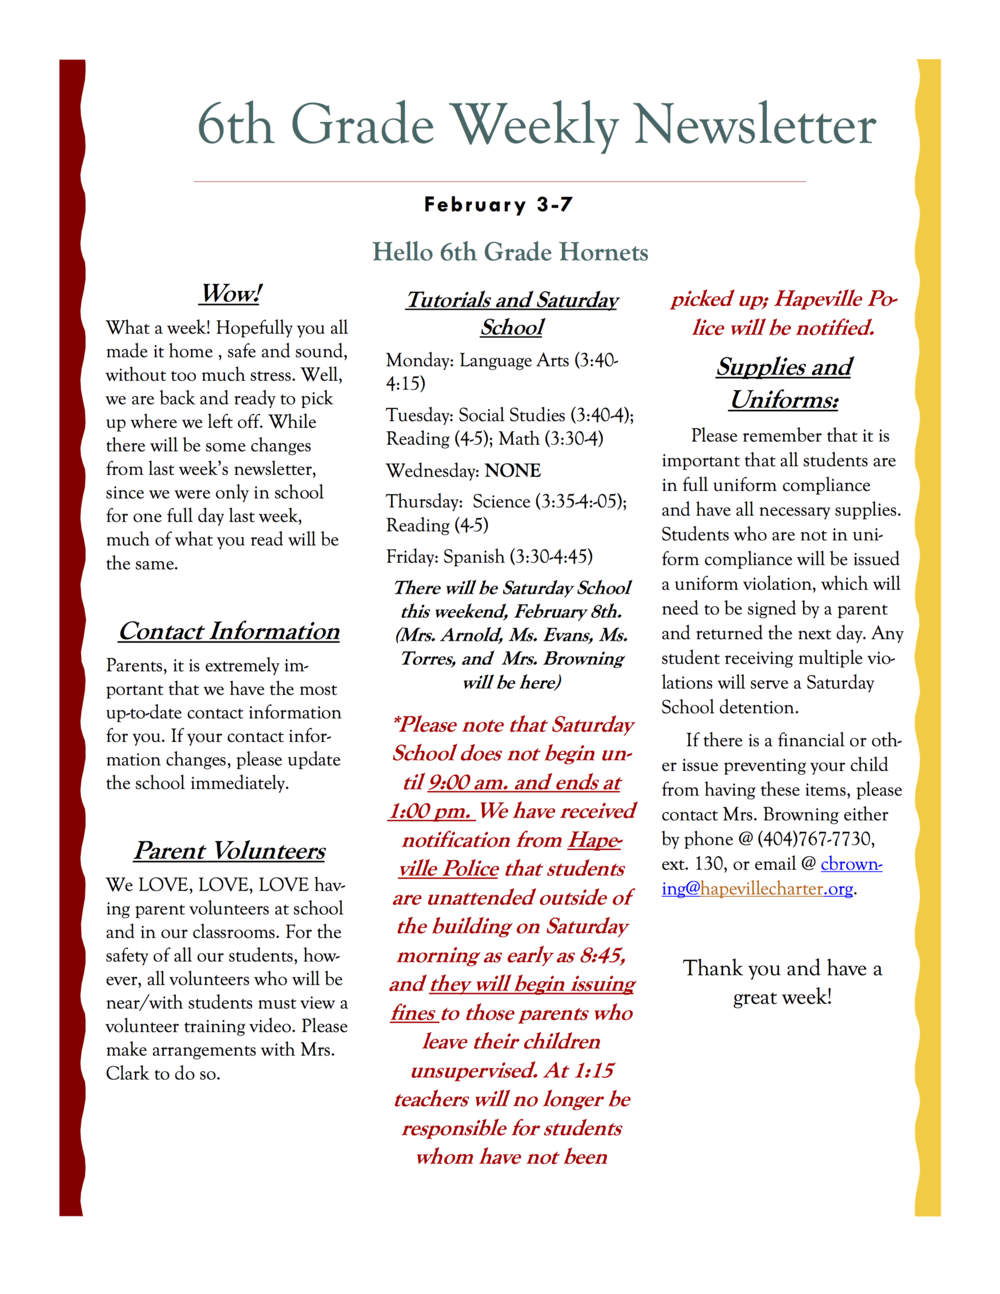 6th grade newsletter Feb 3A.png